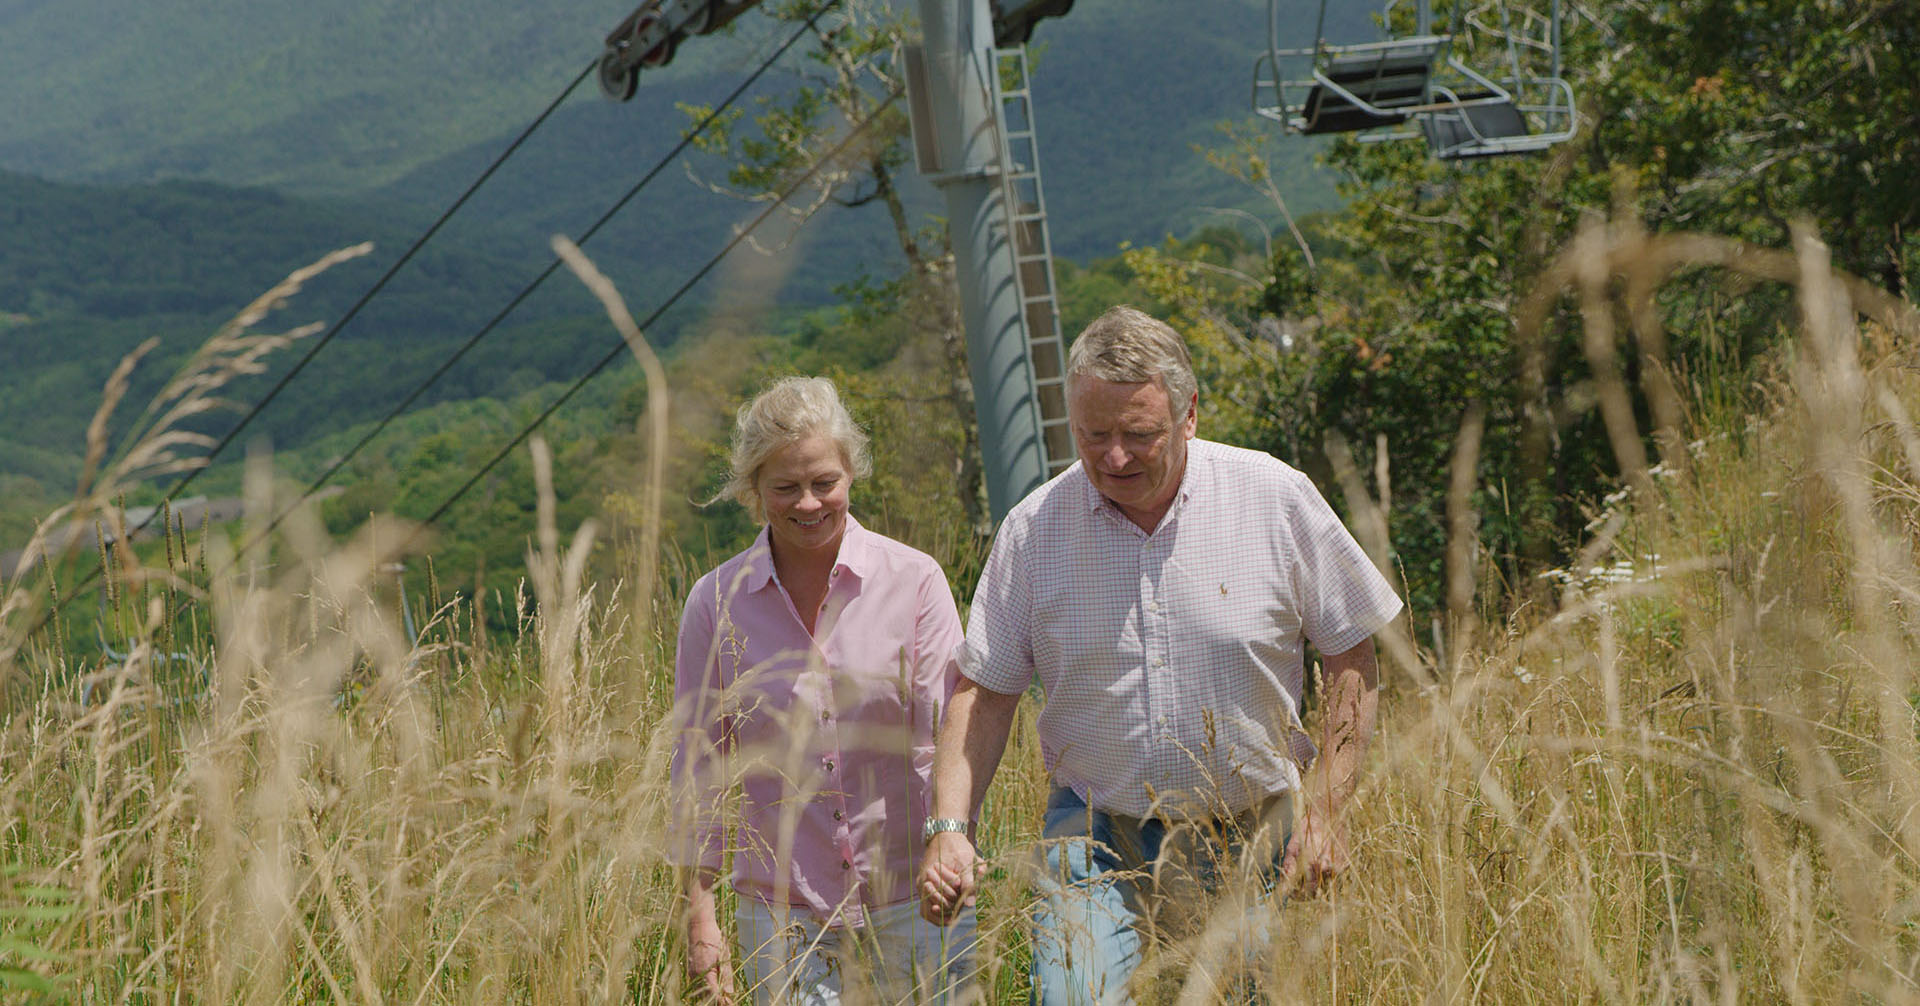 nowsay-sugar-mountain-documentary-heres-to-50-gunther-kim-sugar-mountain-owners